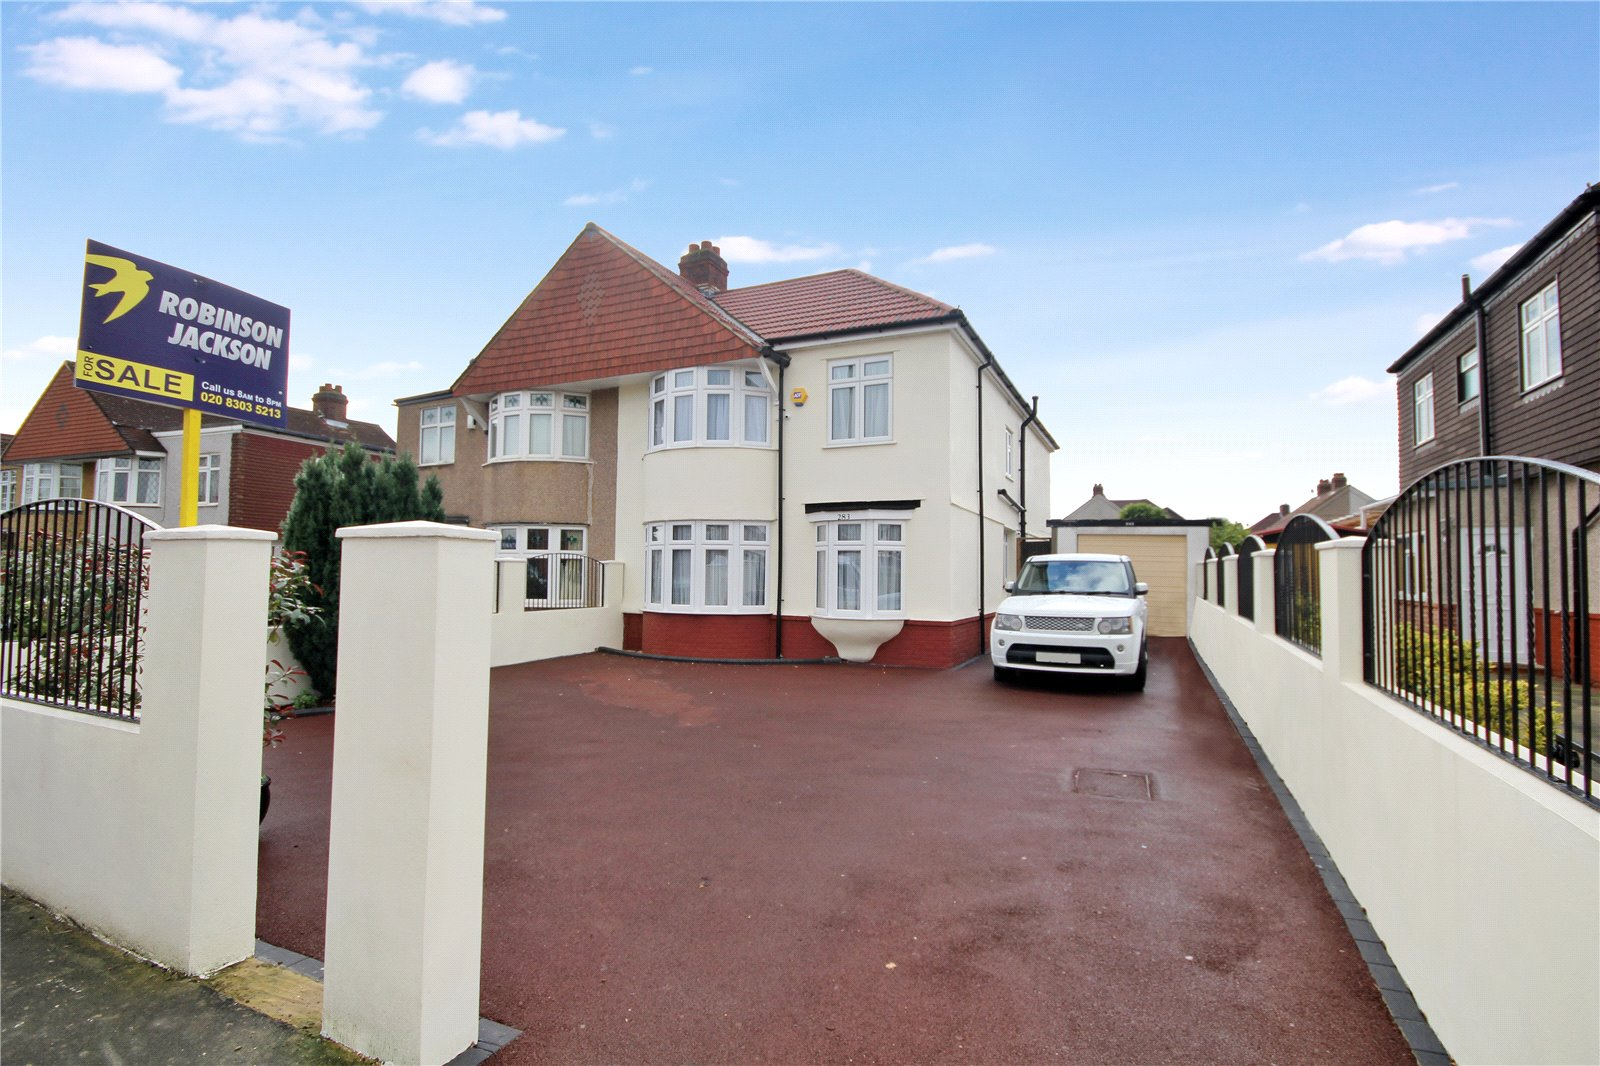 Bellegrove Road, South Welling, Kent, DA16